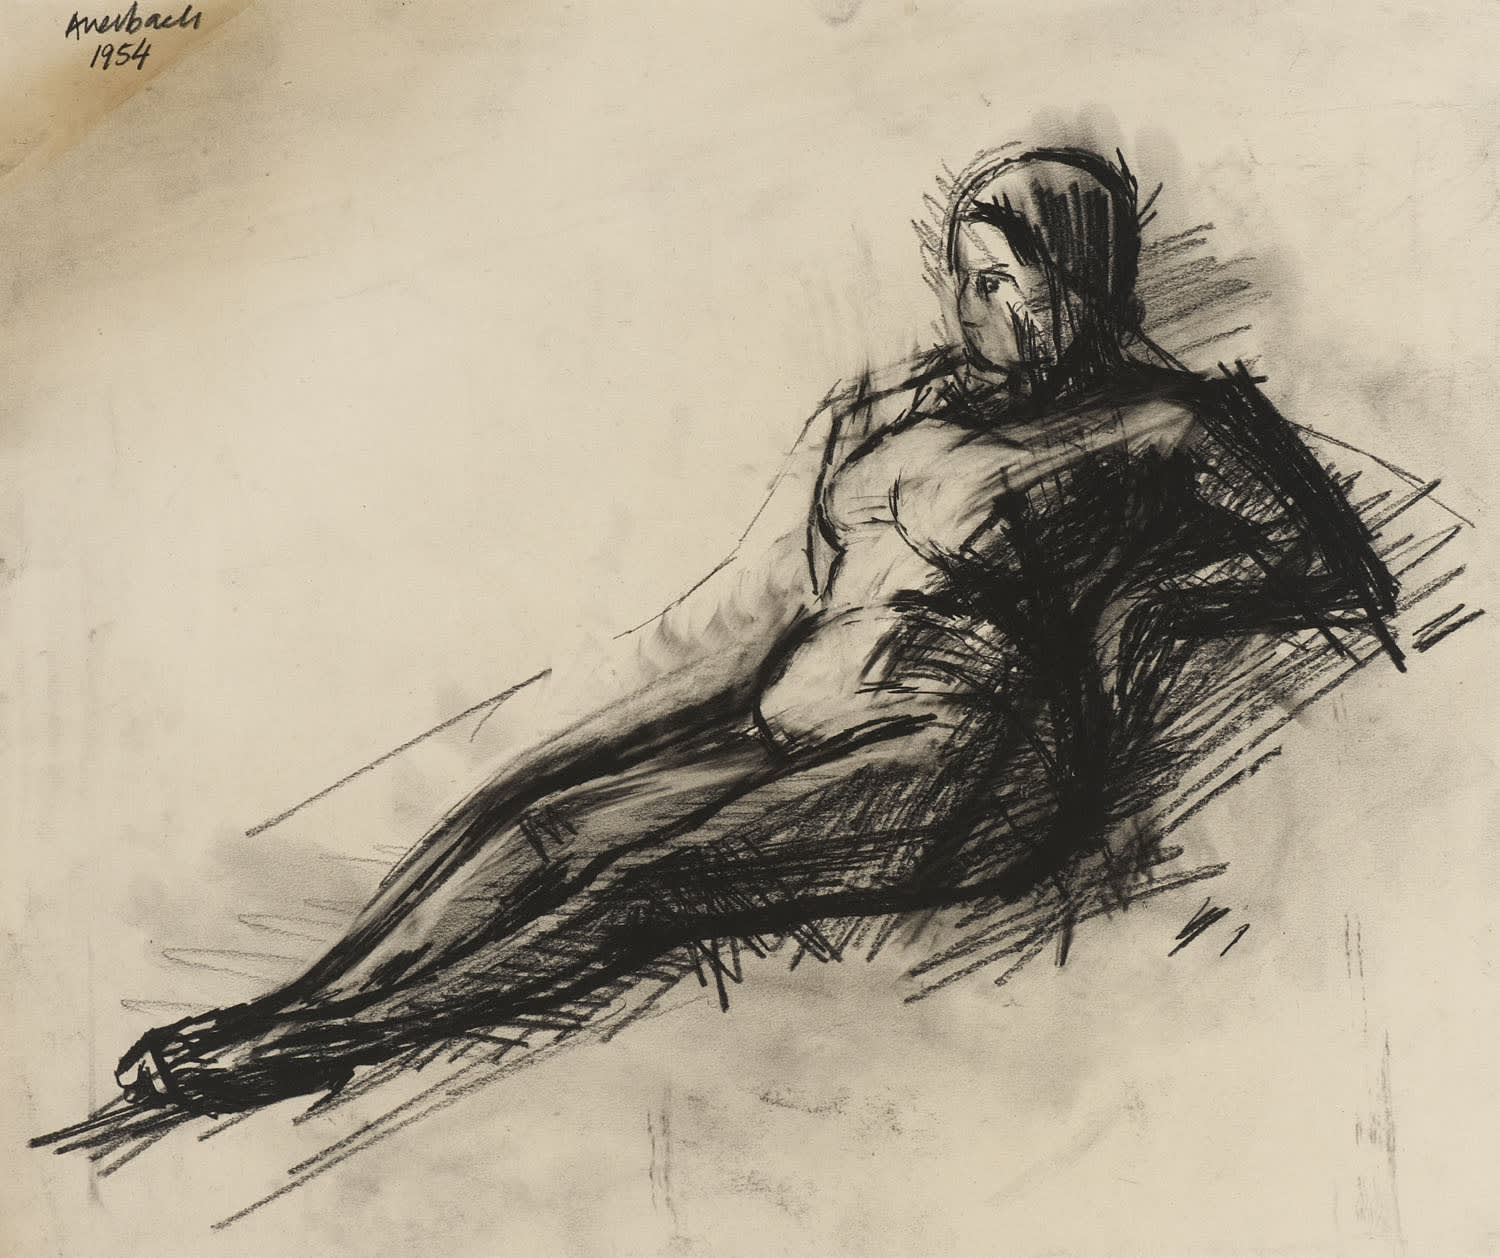 Frank Auerbach (1931-) Nude 1954 Charcoal on paper 45.5 x 54.5 cm Ben Uri Collection © Frank Auerbach, courtesy of Marlborough Fine Art To see and discover more about this artist click here